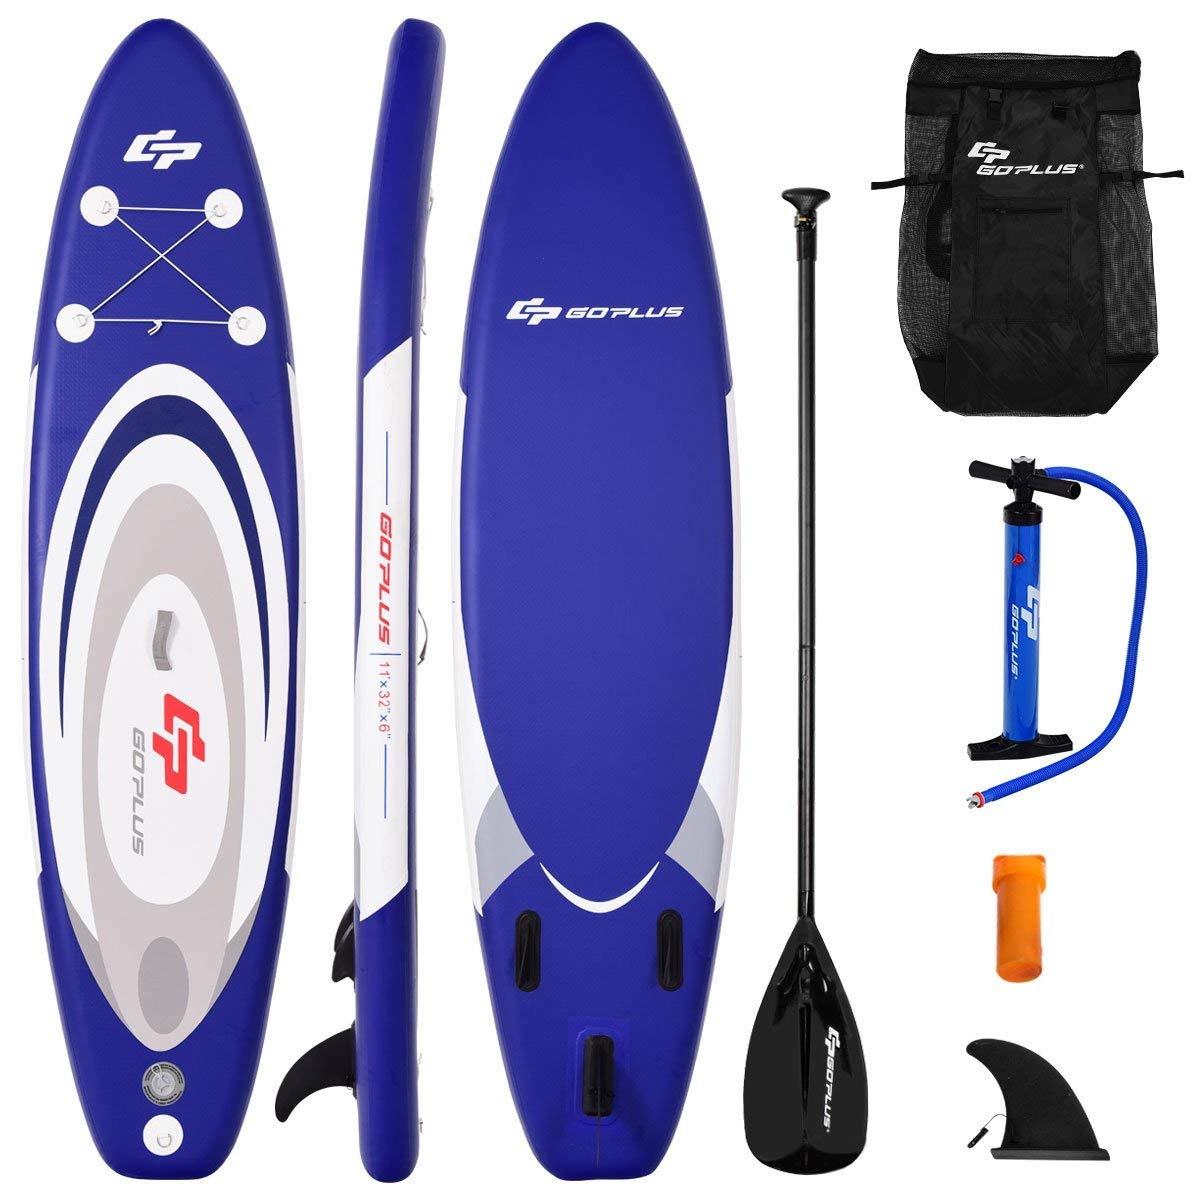 Goplus Inflatable Stand up Paddle Board Surfboard SUP Board with Adjustable Paddle Carry Bag Manual Pump Repair Kit Removable Fin for All Skill Levels, 6'' Thick (Navy, 10FT)